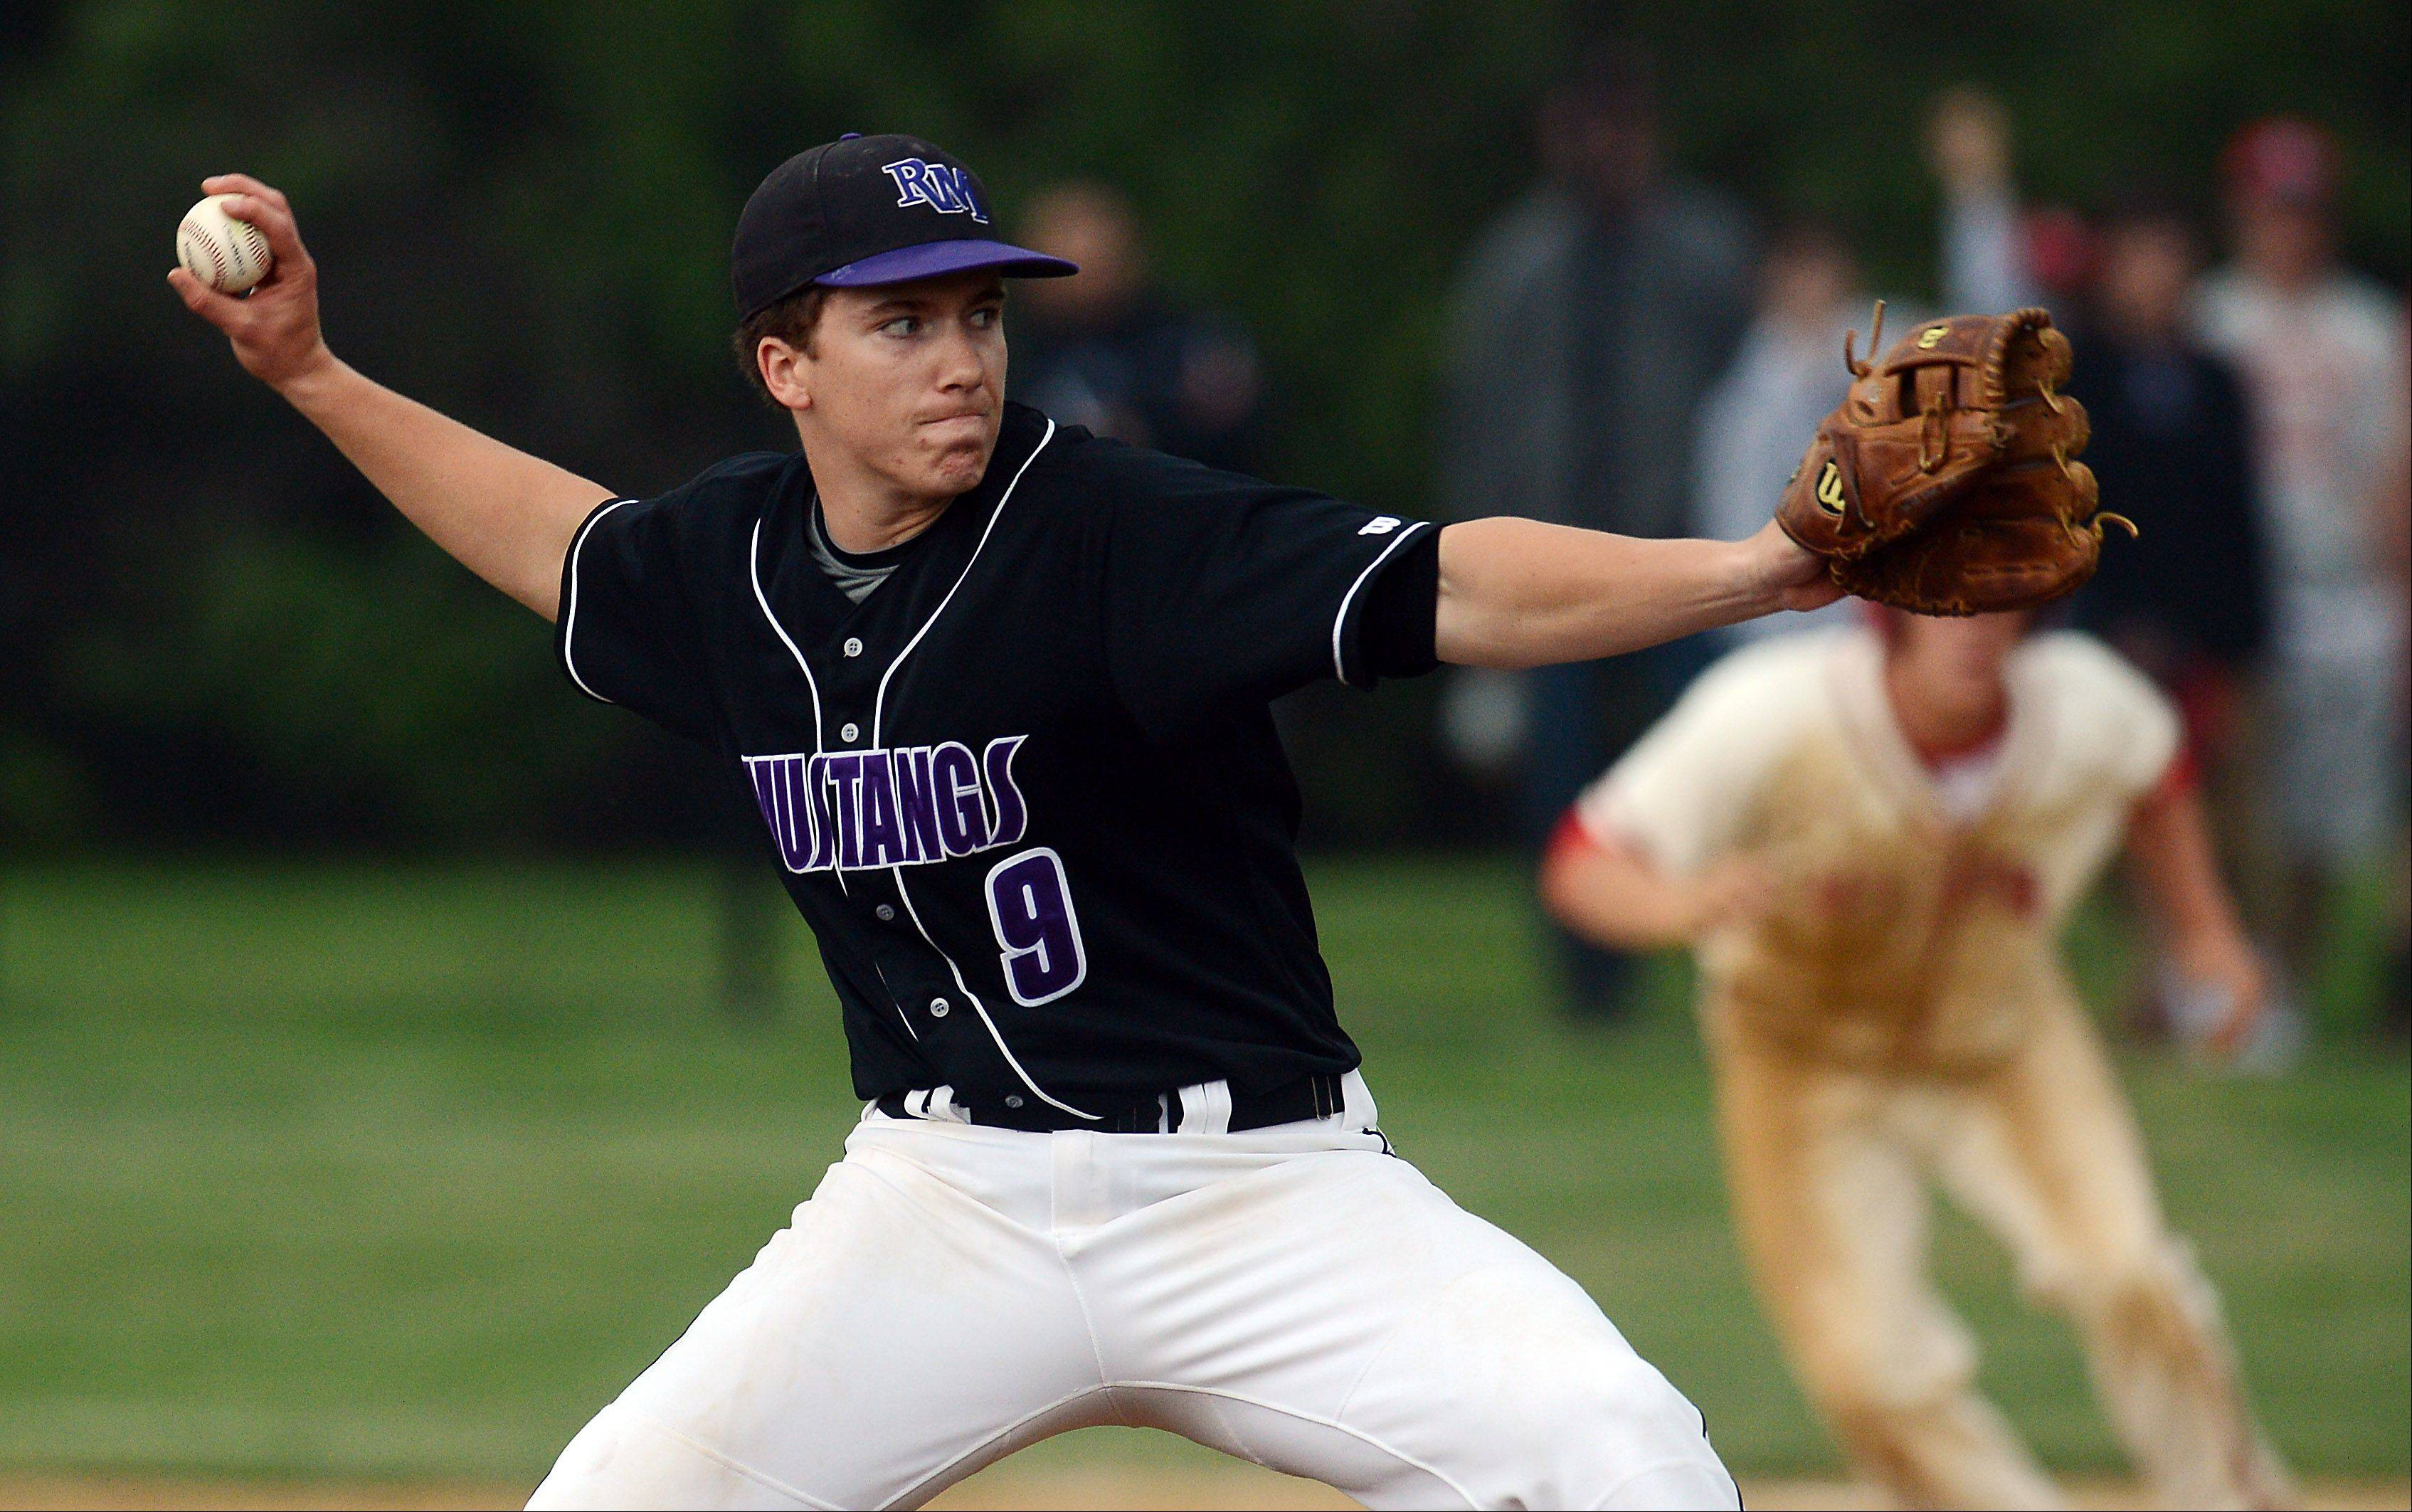 Rolling Meadows pitcher Matt Dennis fires against Barrington in the MSL championship game Friday. Dennis got the win and also hit a 2-run homer in the Mustangs� 11-6 victory.